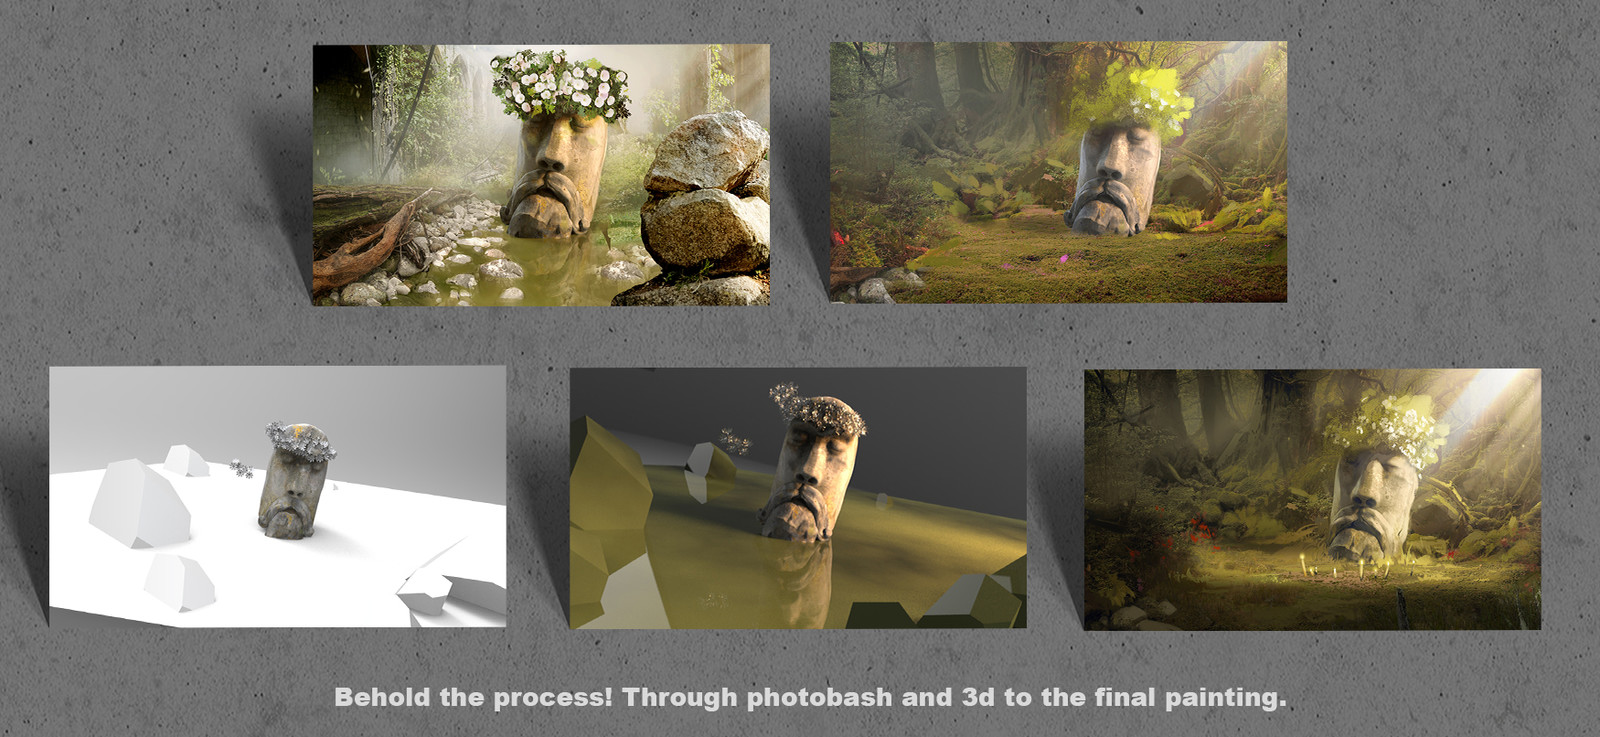 Photobash and renders